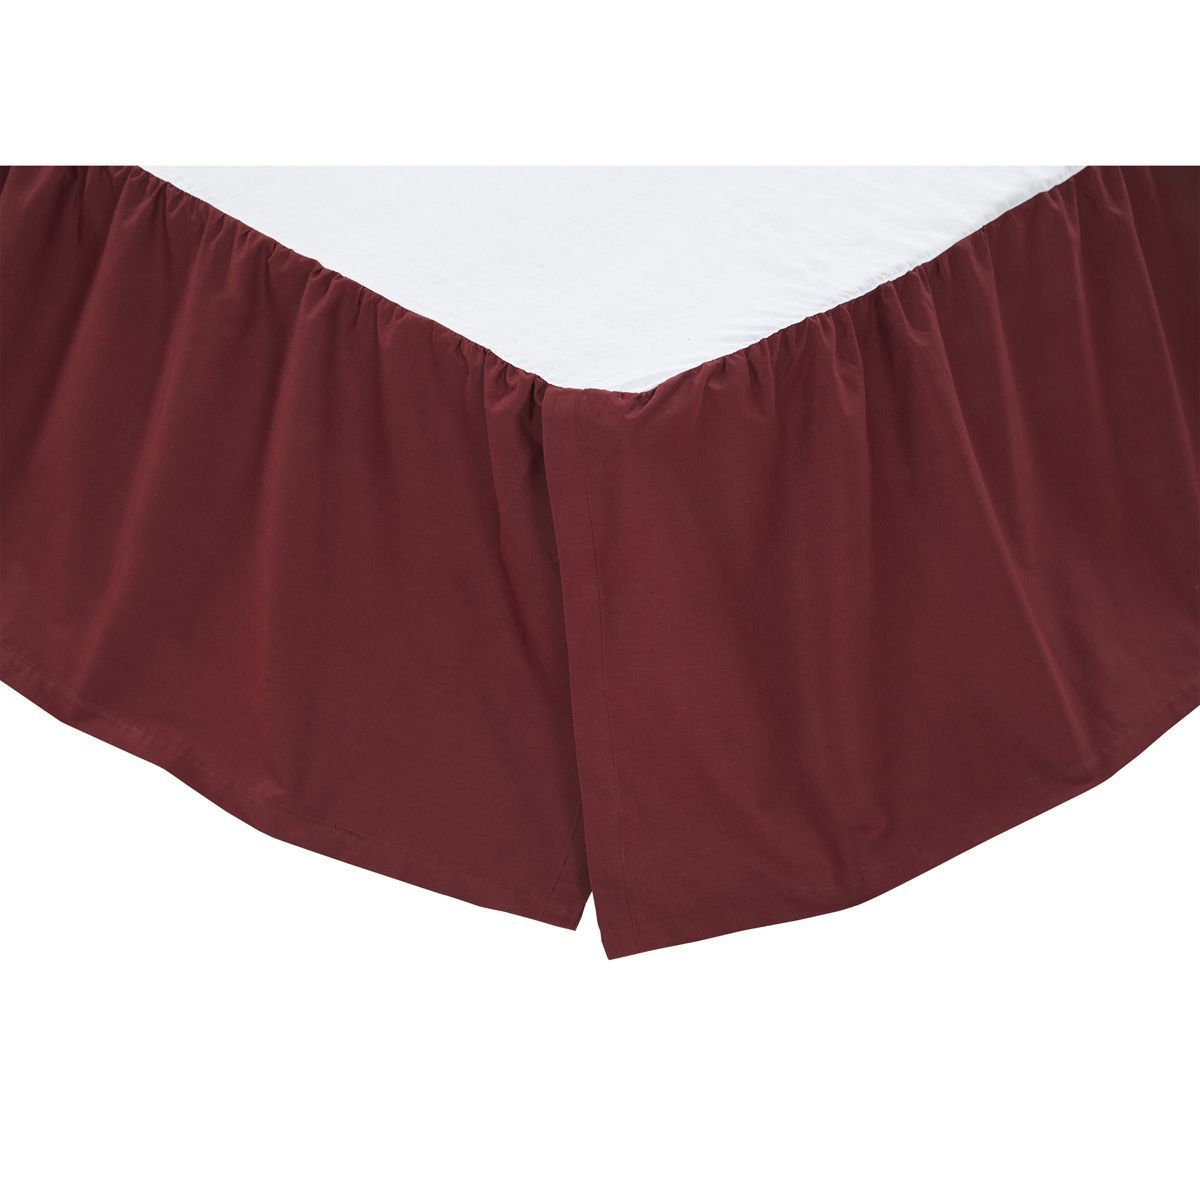 Solid Burgundy 100% Cotton King Bed Skirt,VHC,Dust Ruffle for Ninepatch Quilt - $39.95